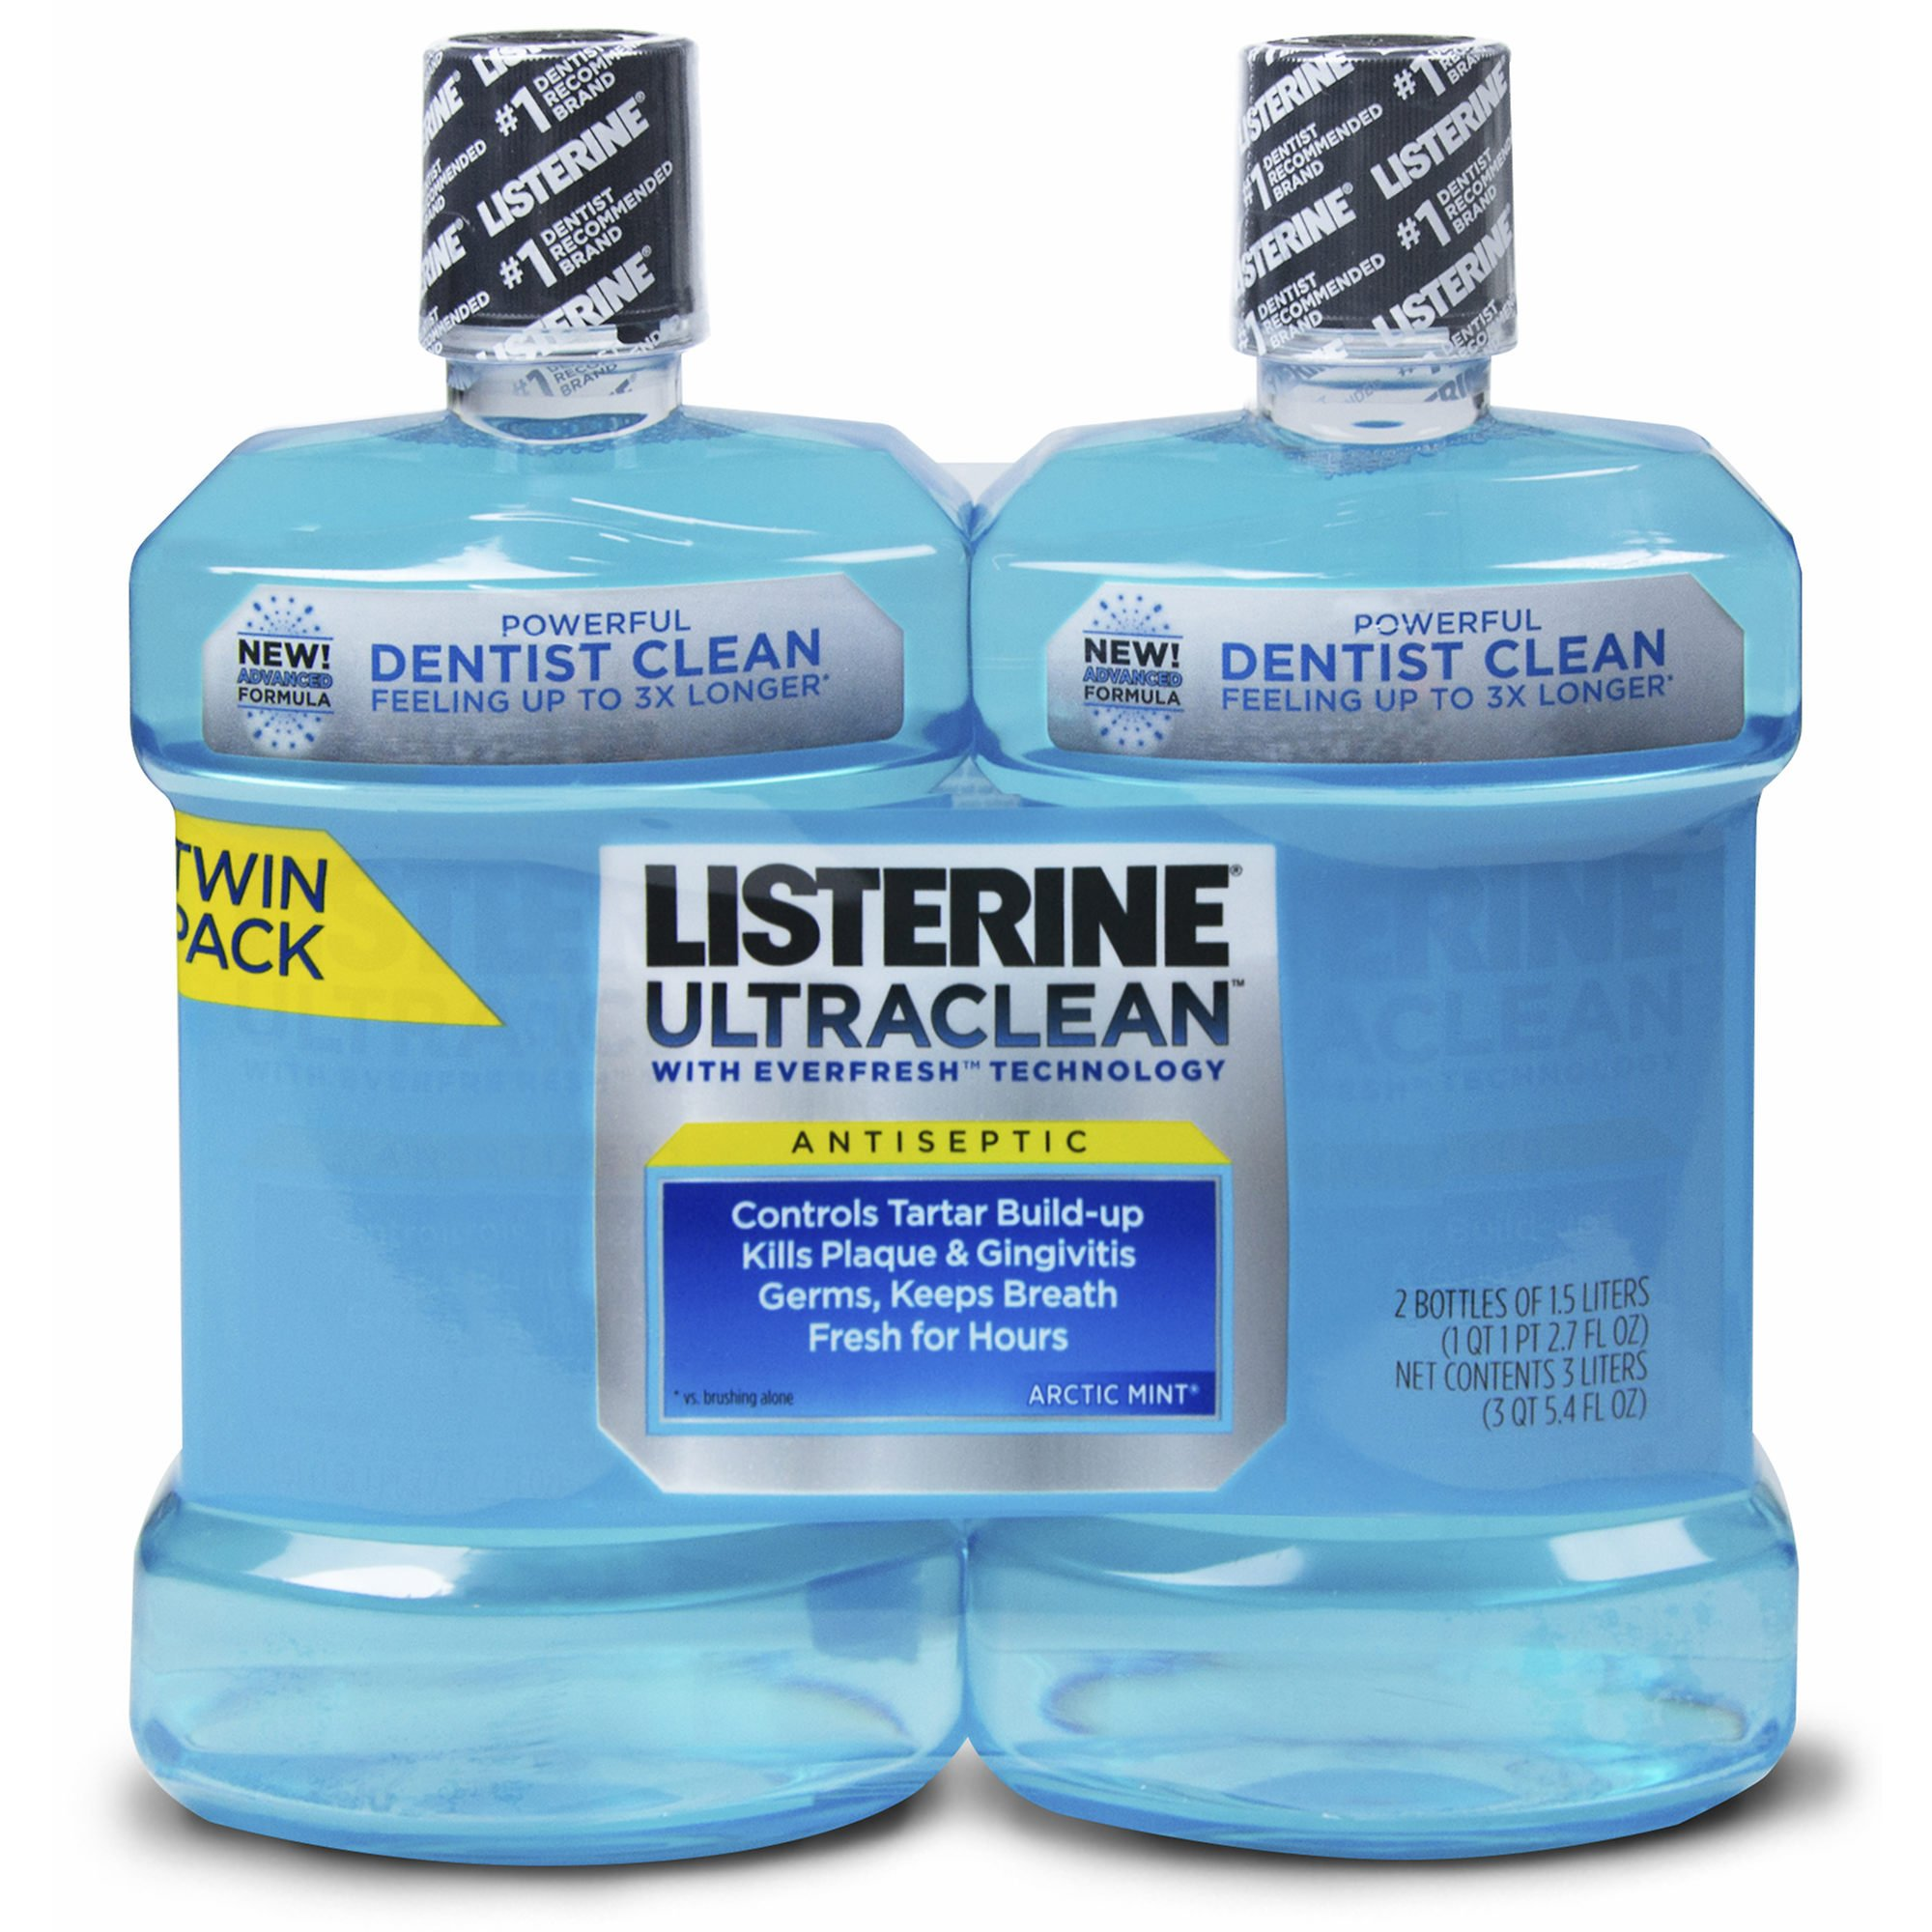 Listerine UltraClean Antiseptic Mouthwash, 2 pk./1.5L (pack of 6)